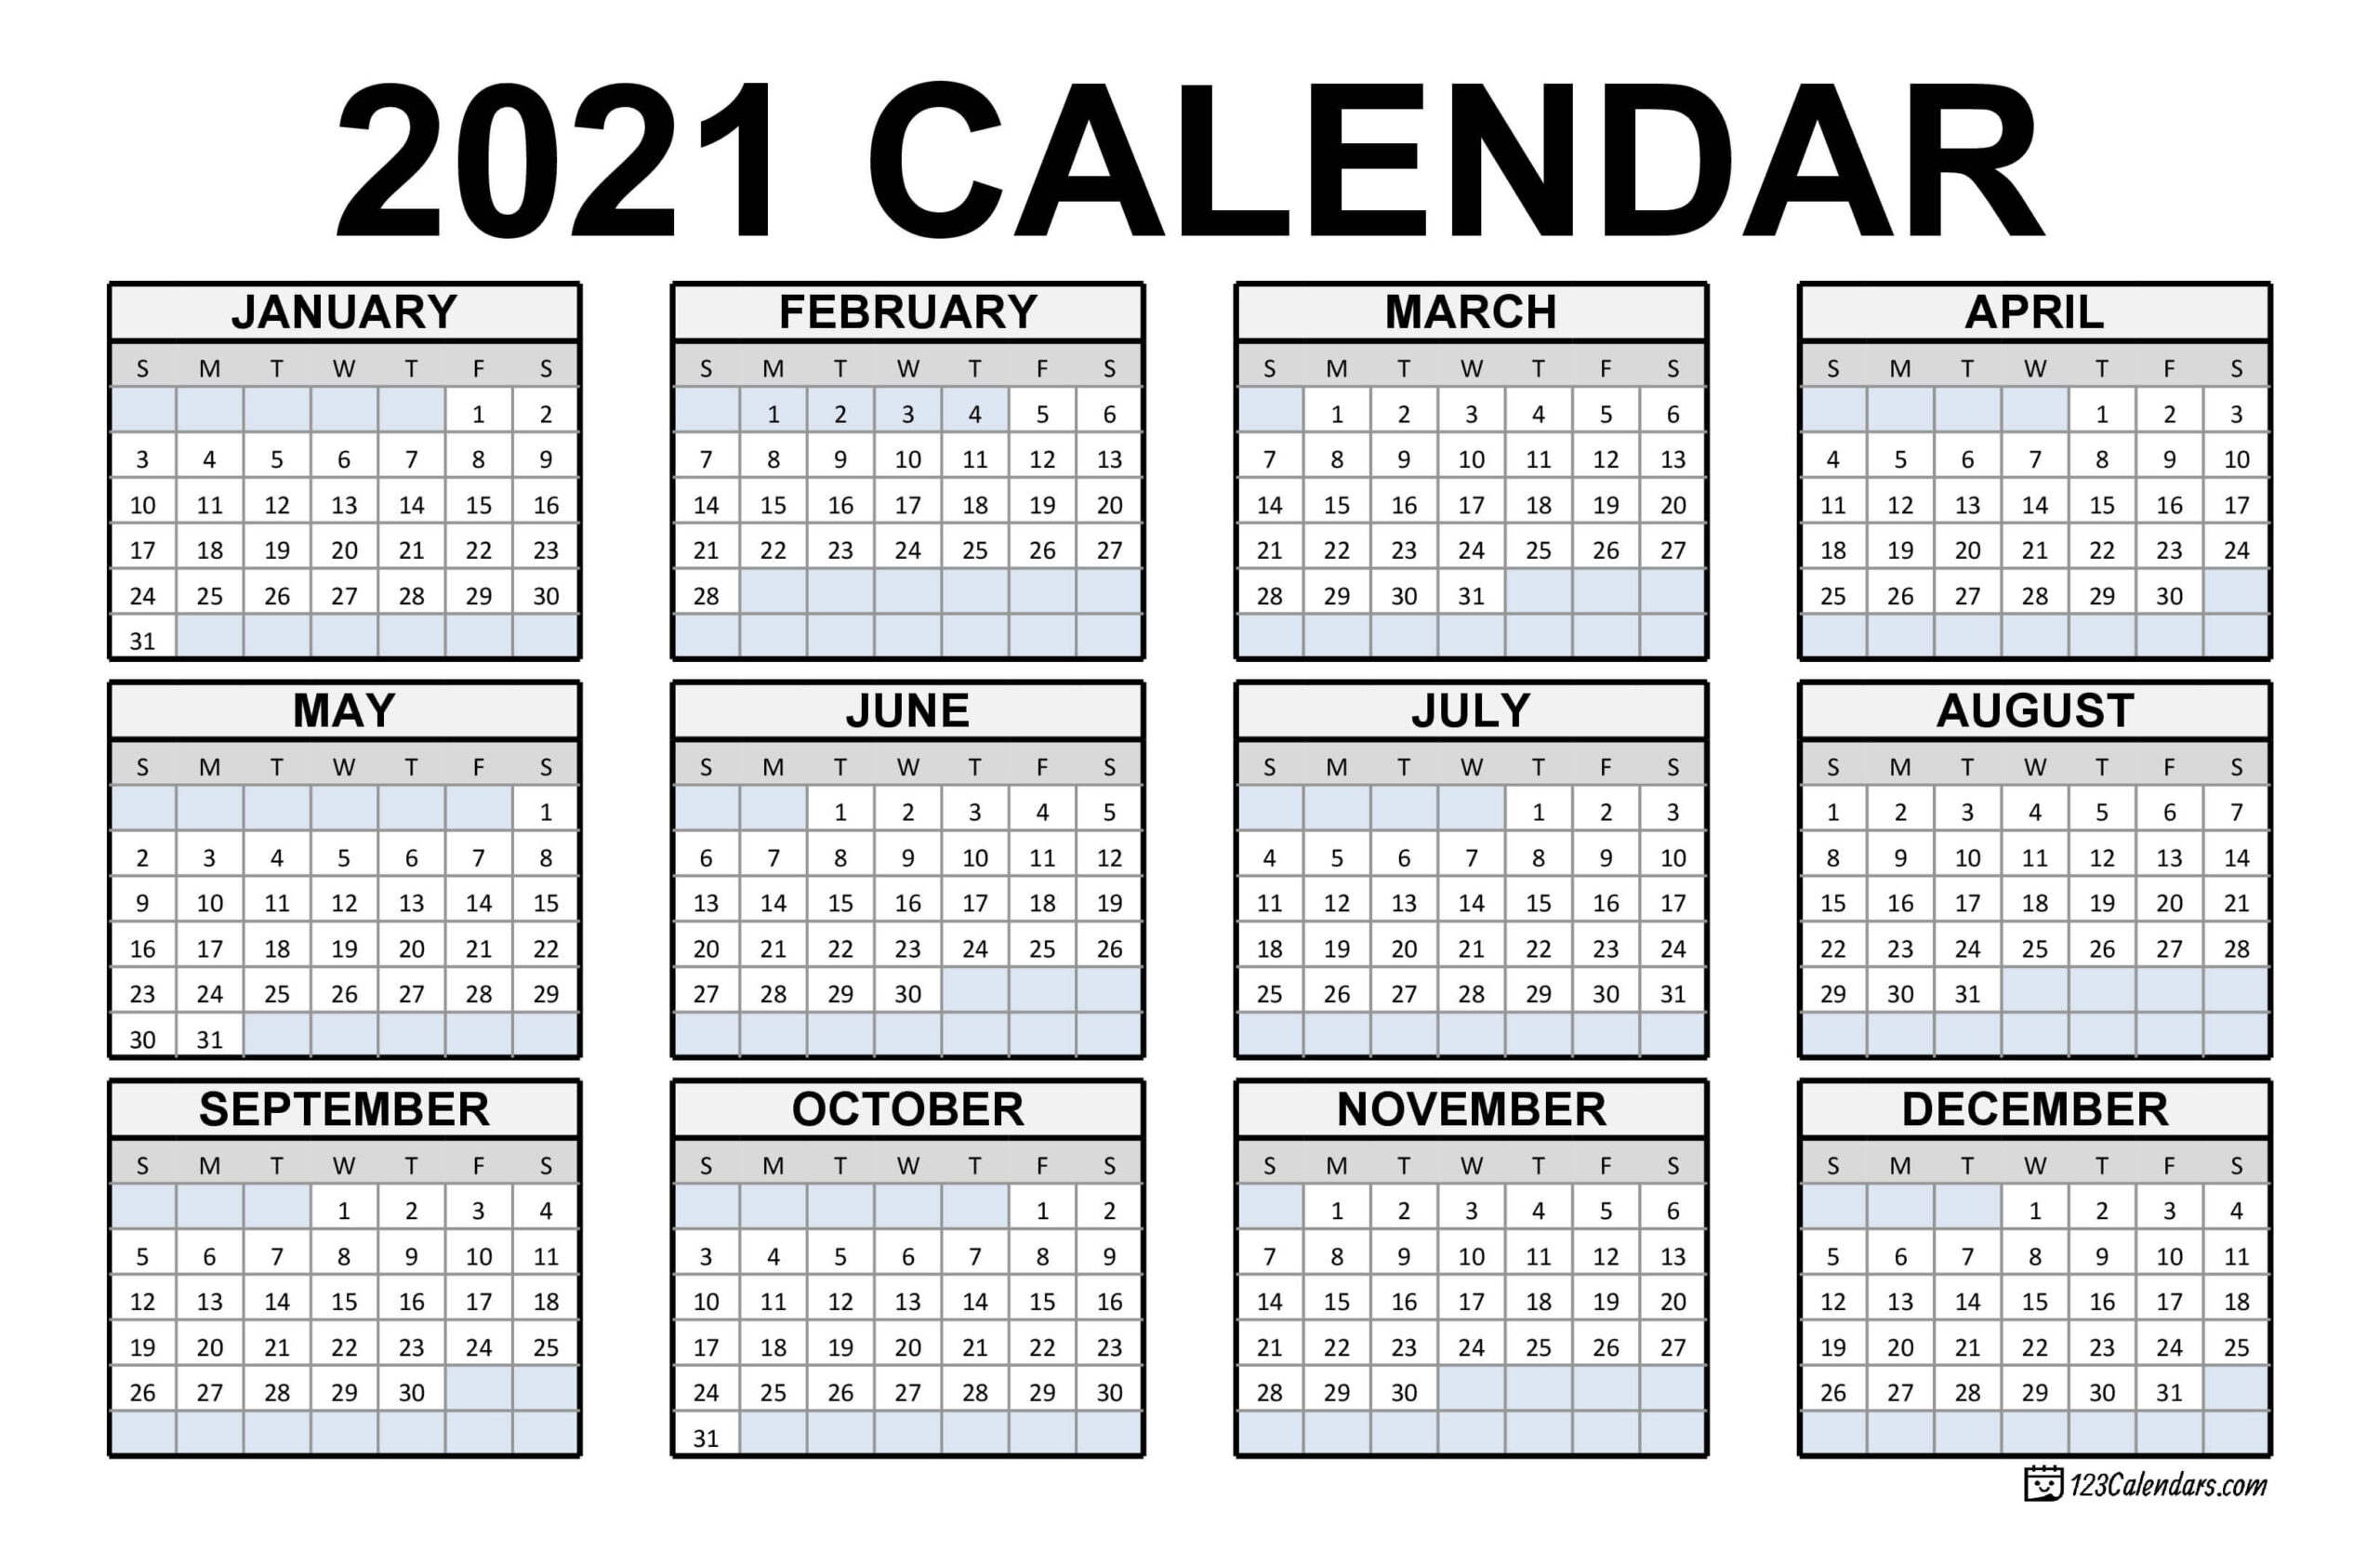 2021 Printable Calendar | 123Calendars within Calendar November December January Space To Write At The Side